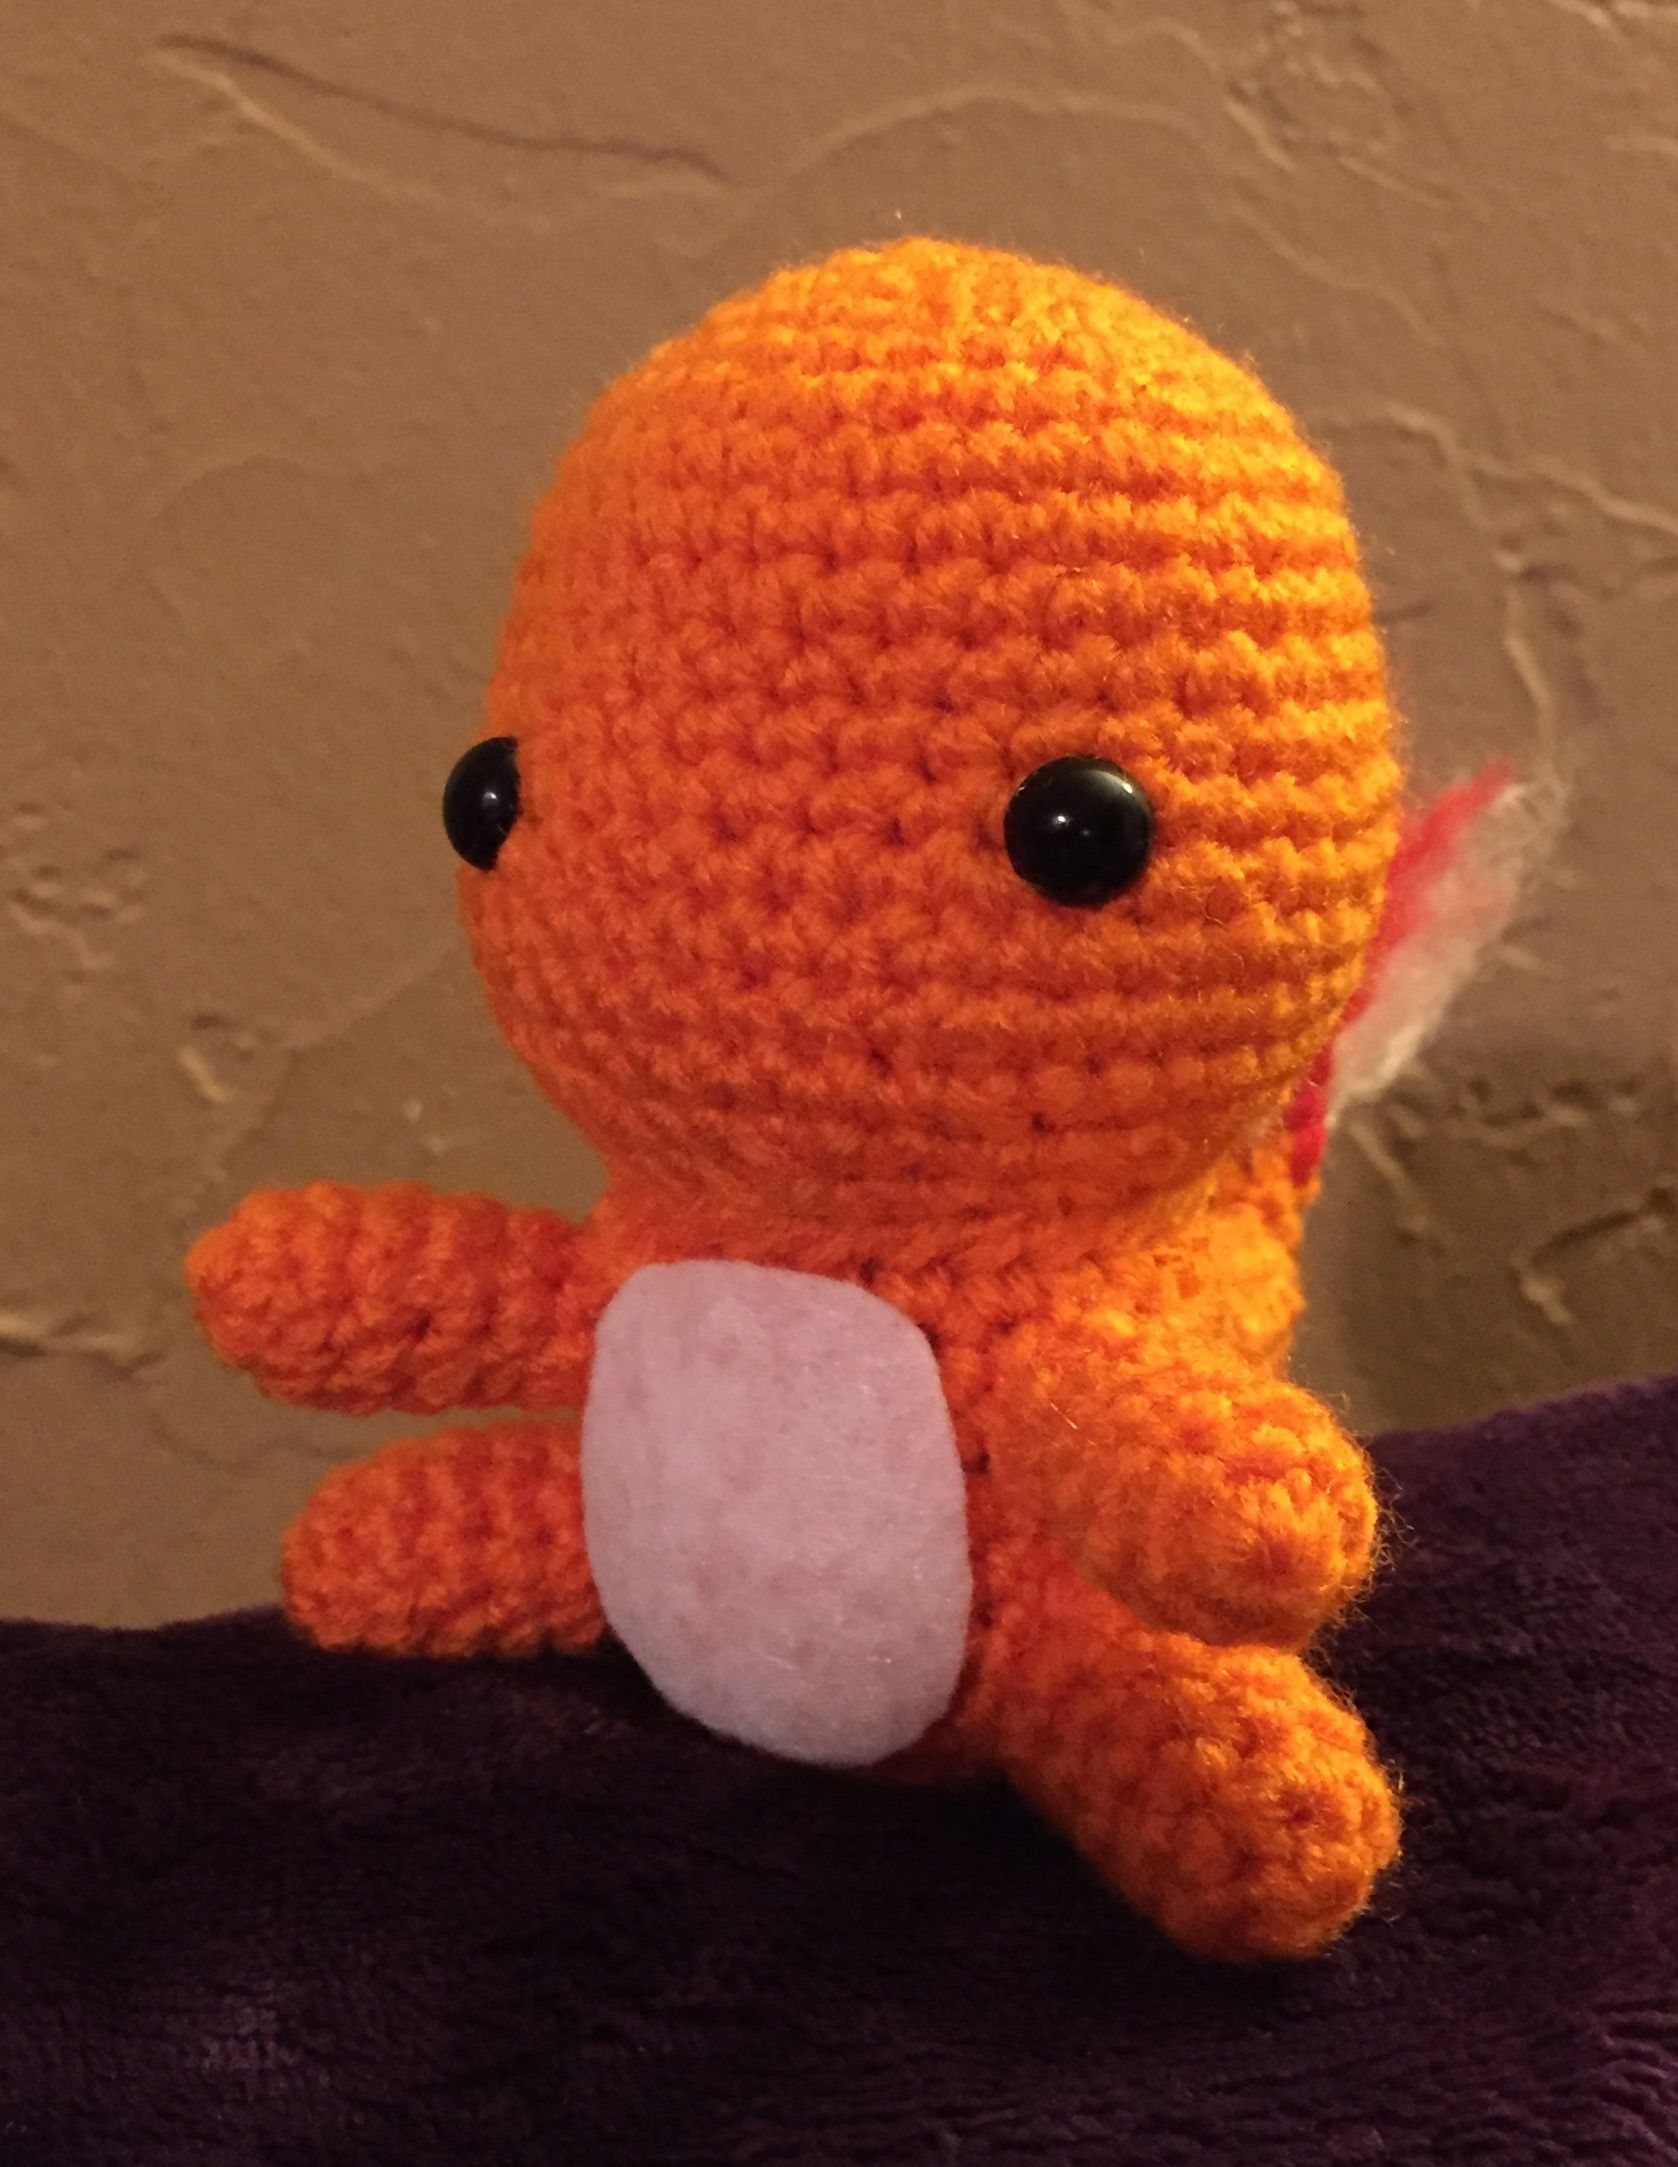 Charmander pattern can be found here: http://53stitches.tumblr.com/post/96536099762/charmander-amigurumi-pattern